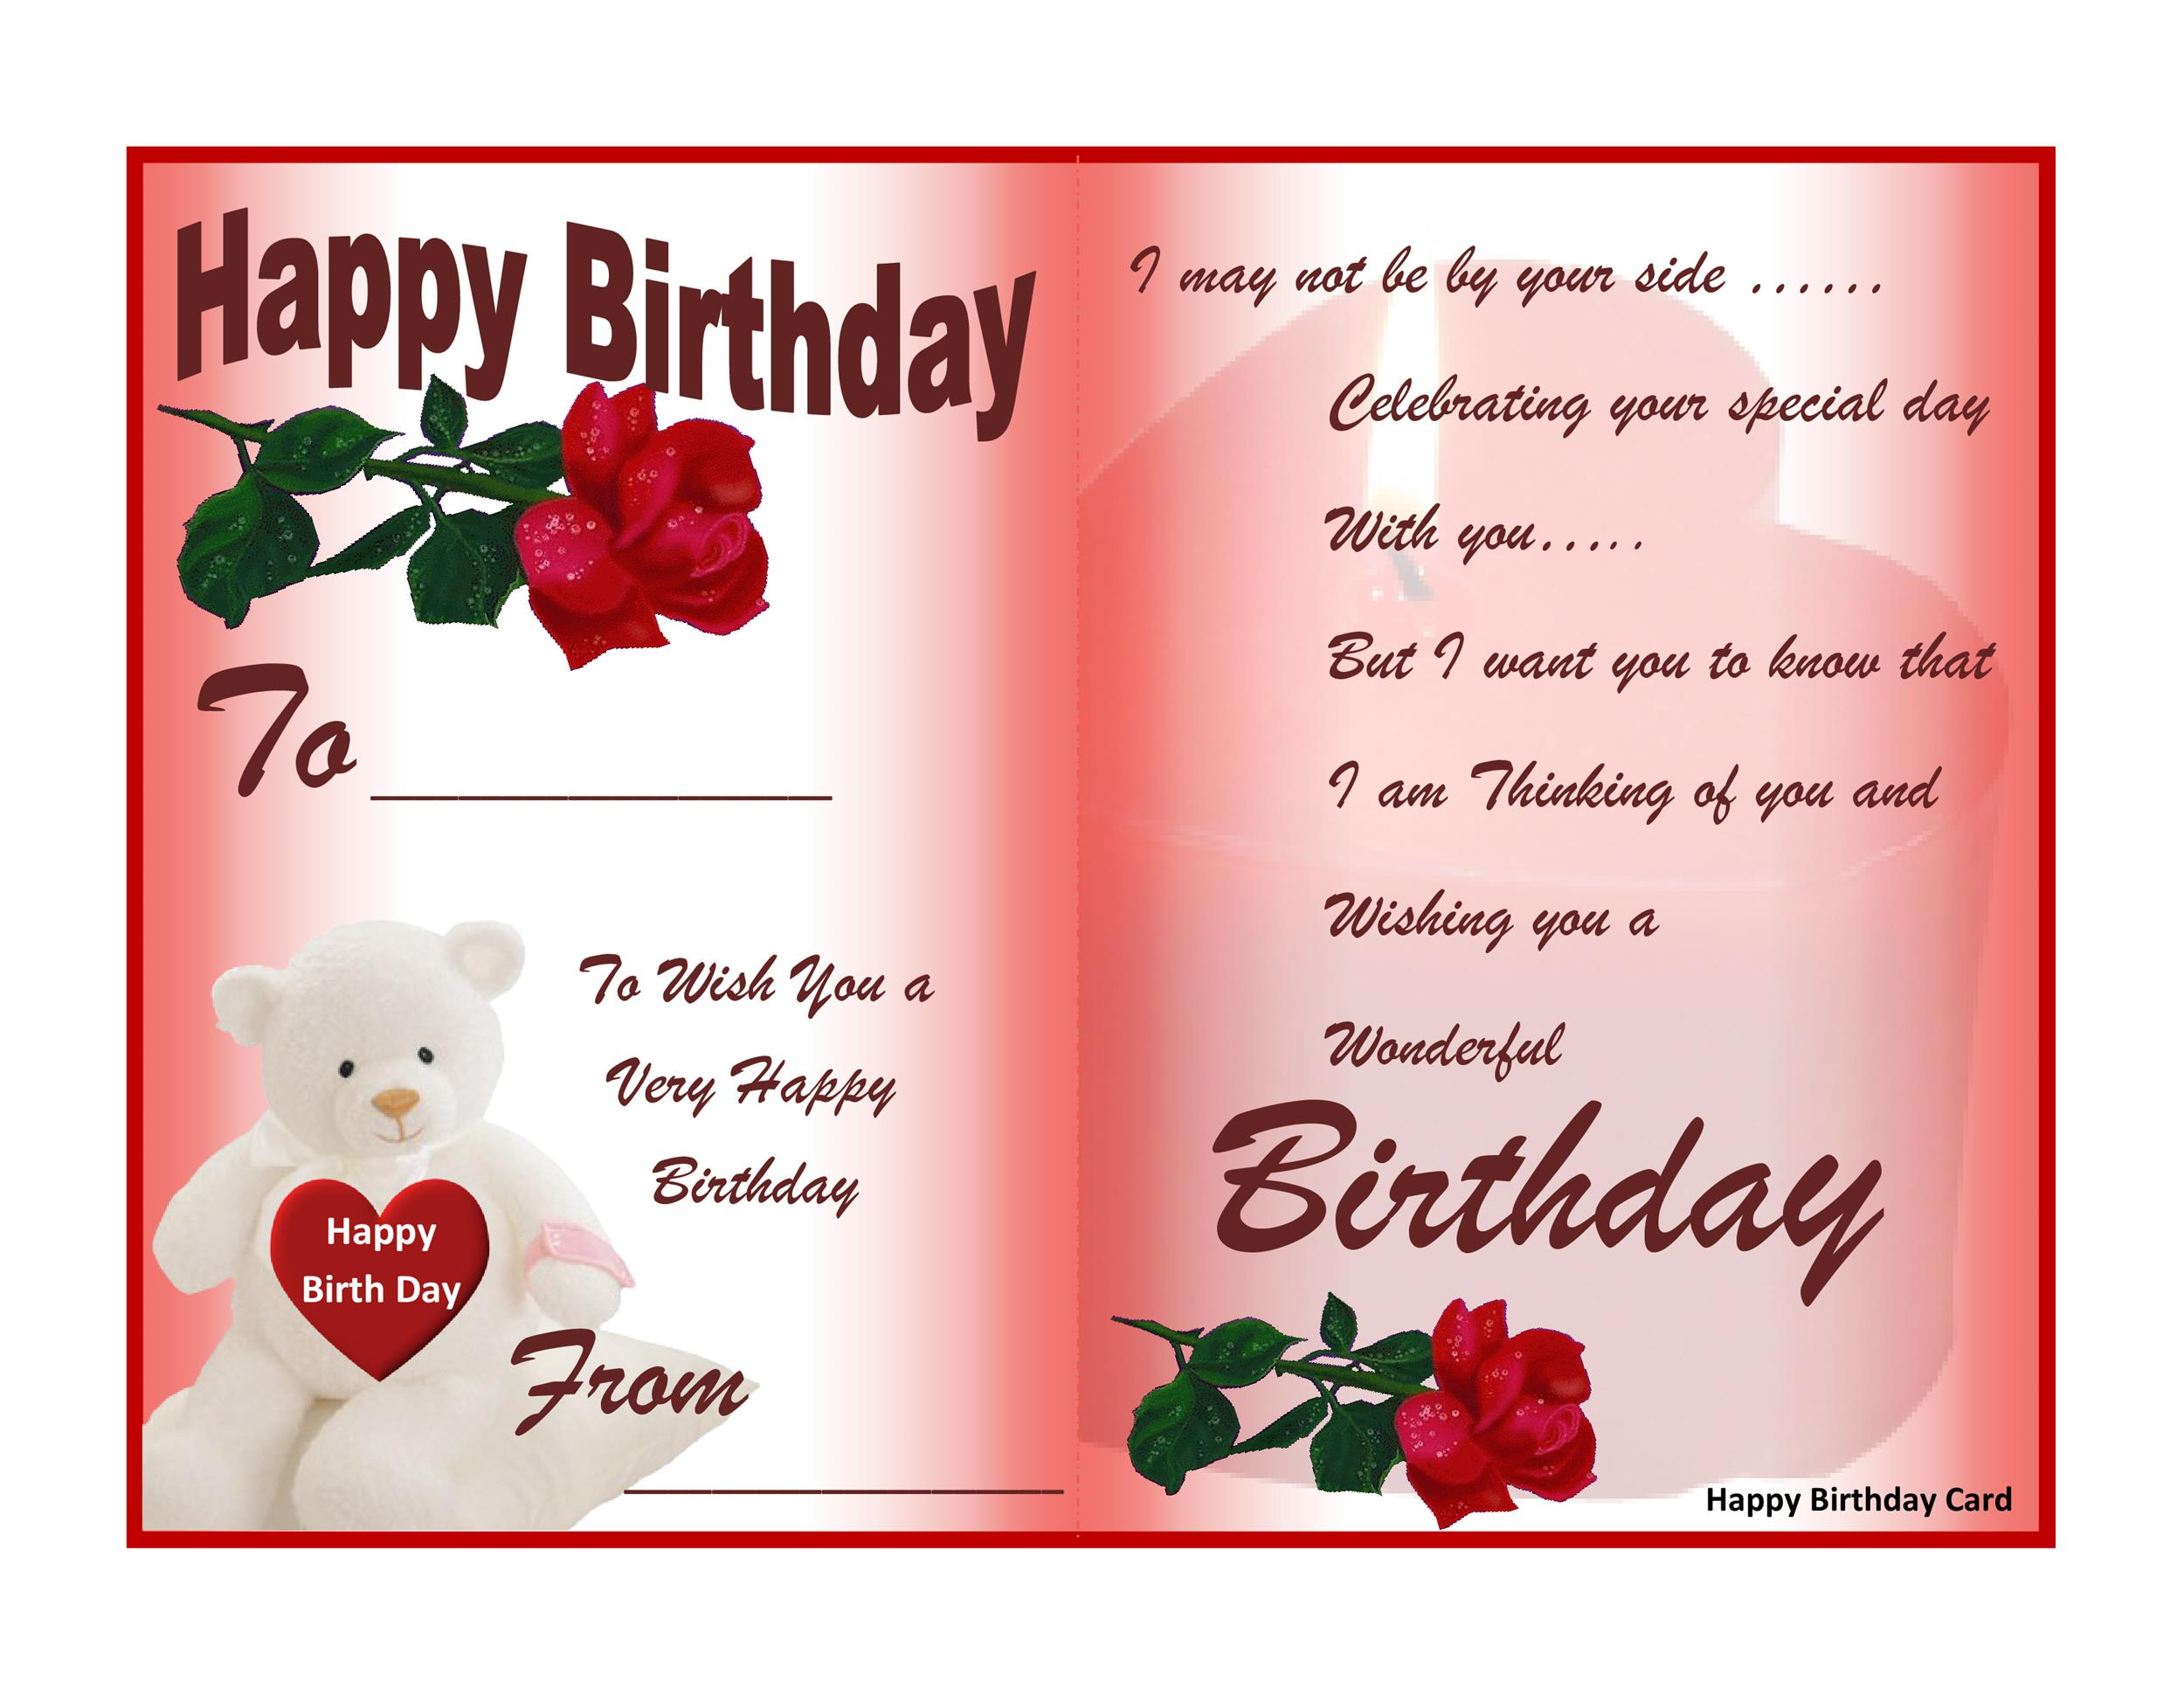 40+ FREE Birthday Card Templates - Template Lab - birthday card layout